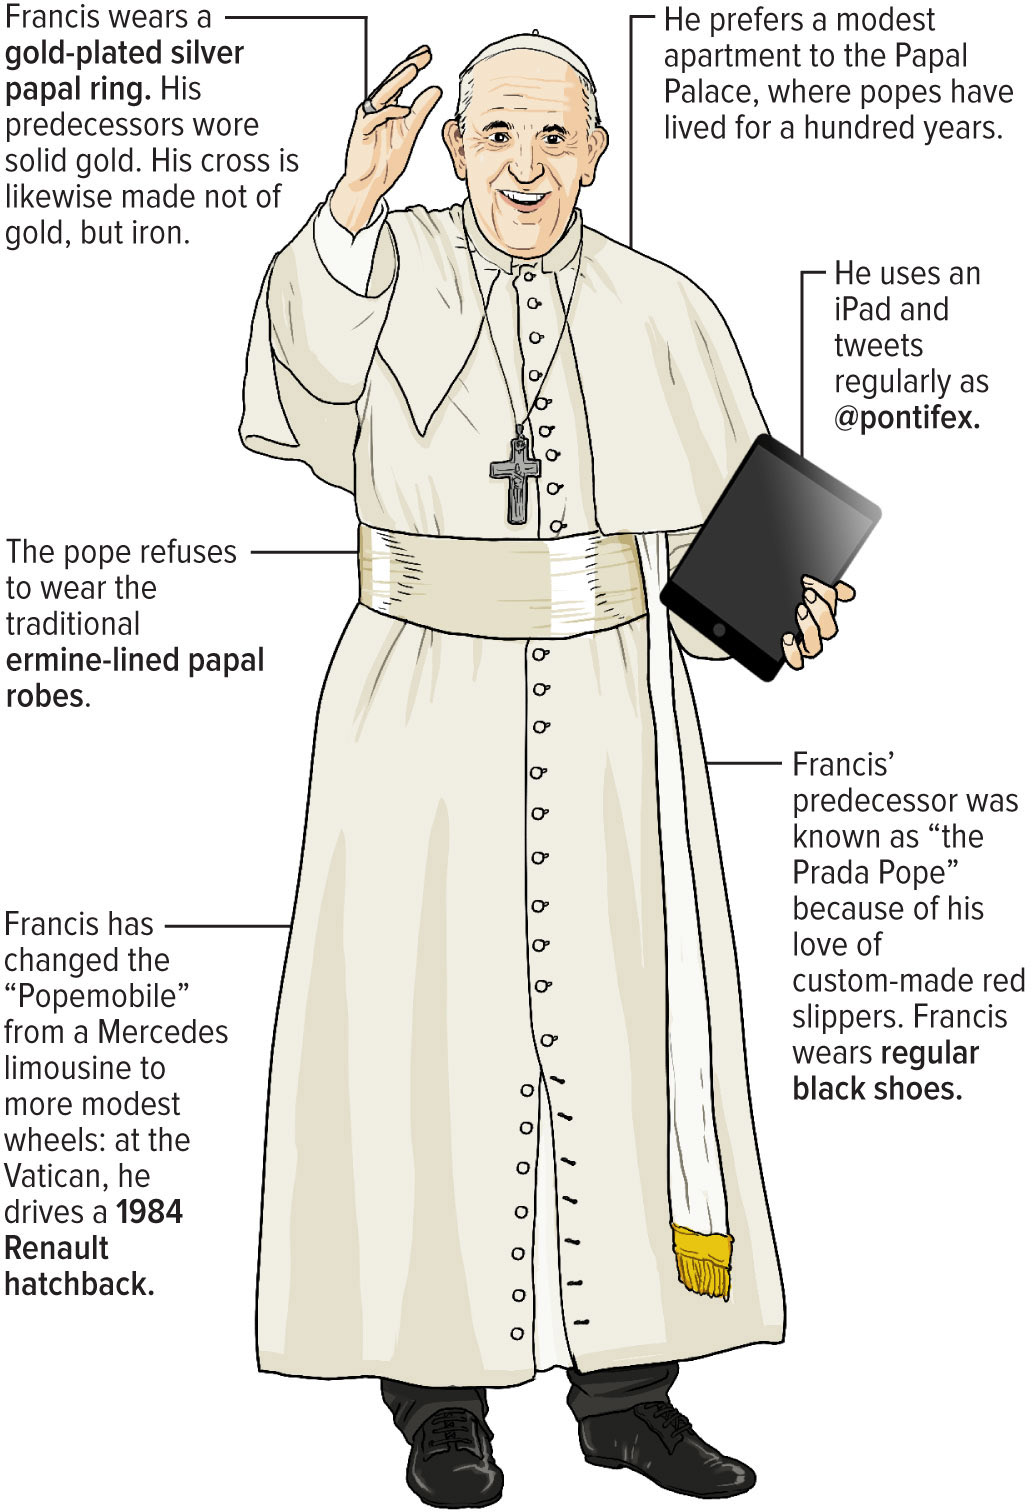 A tale of two popes: Francis vs. his predecessor